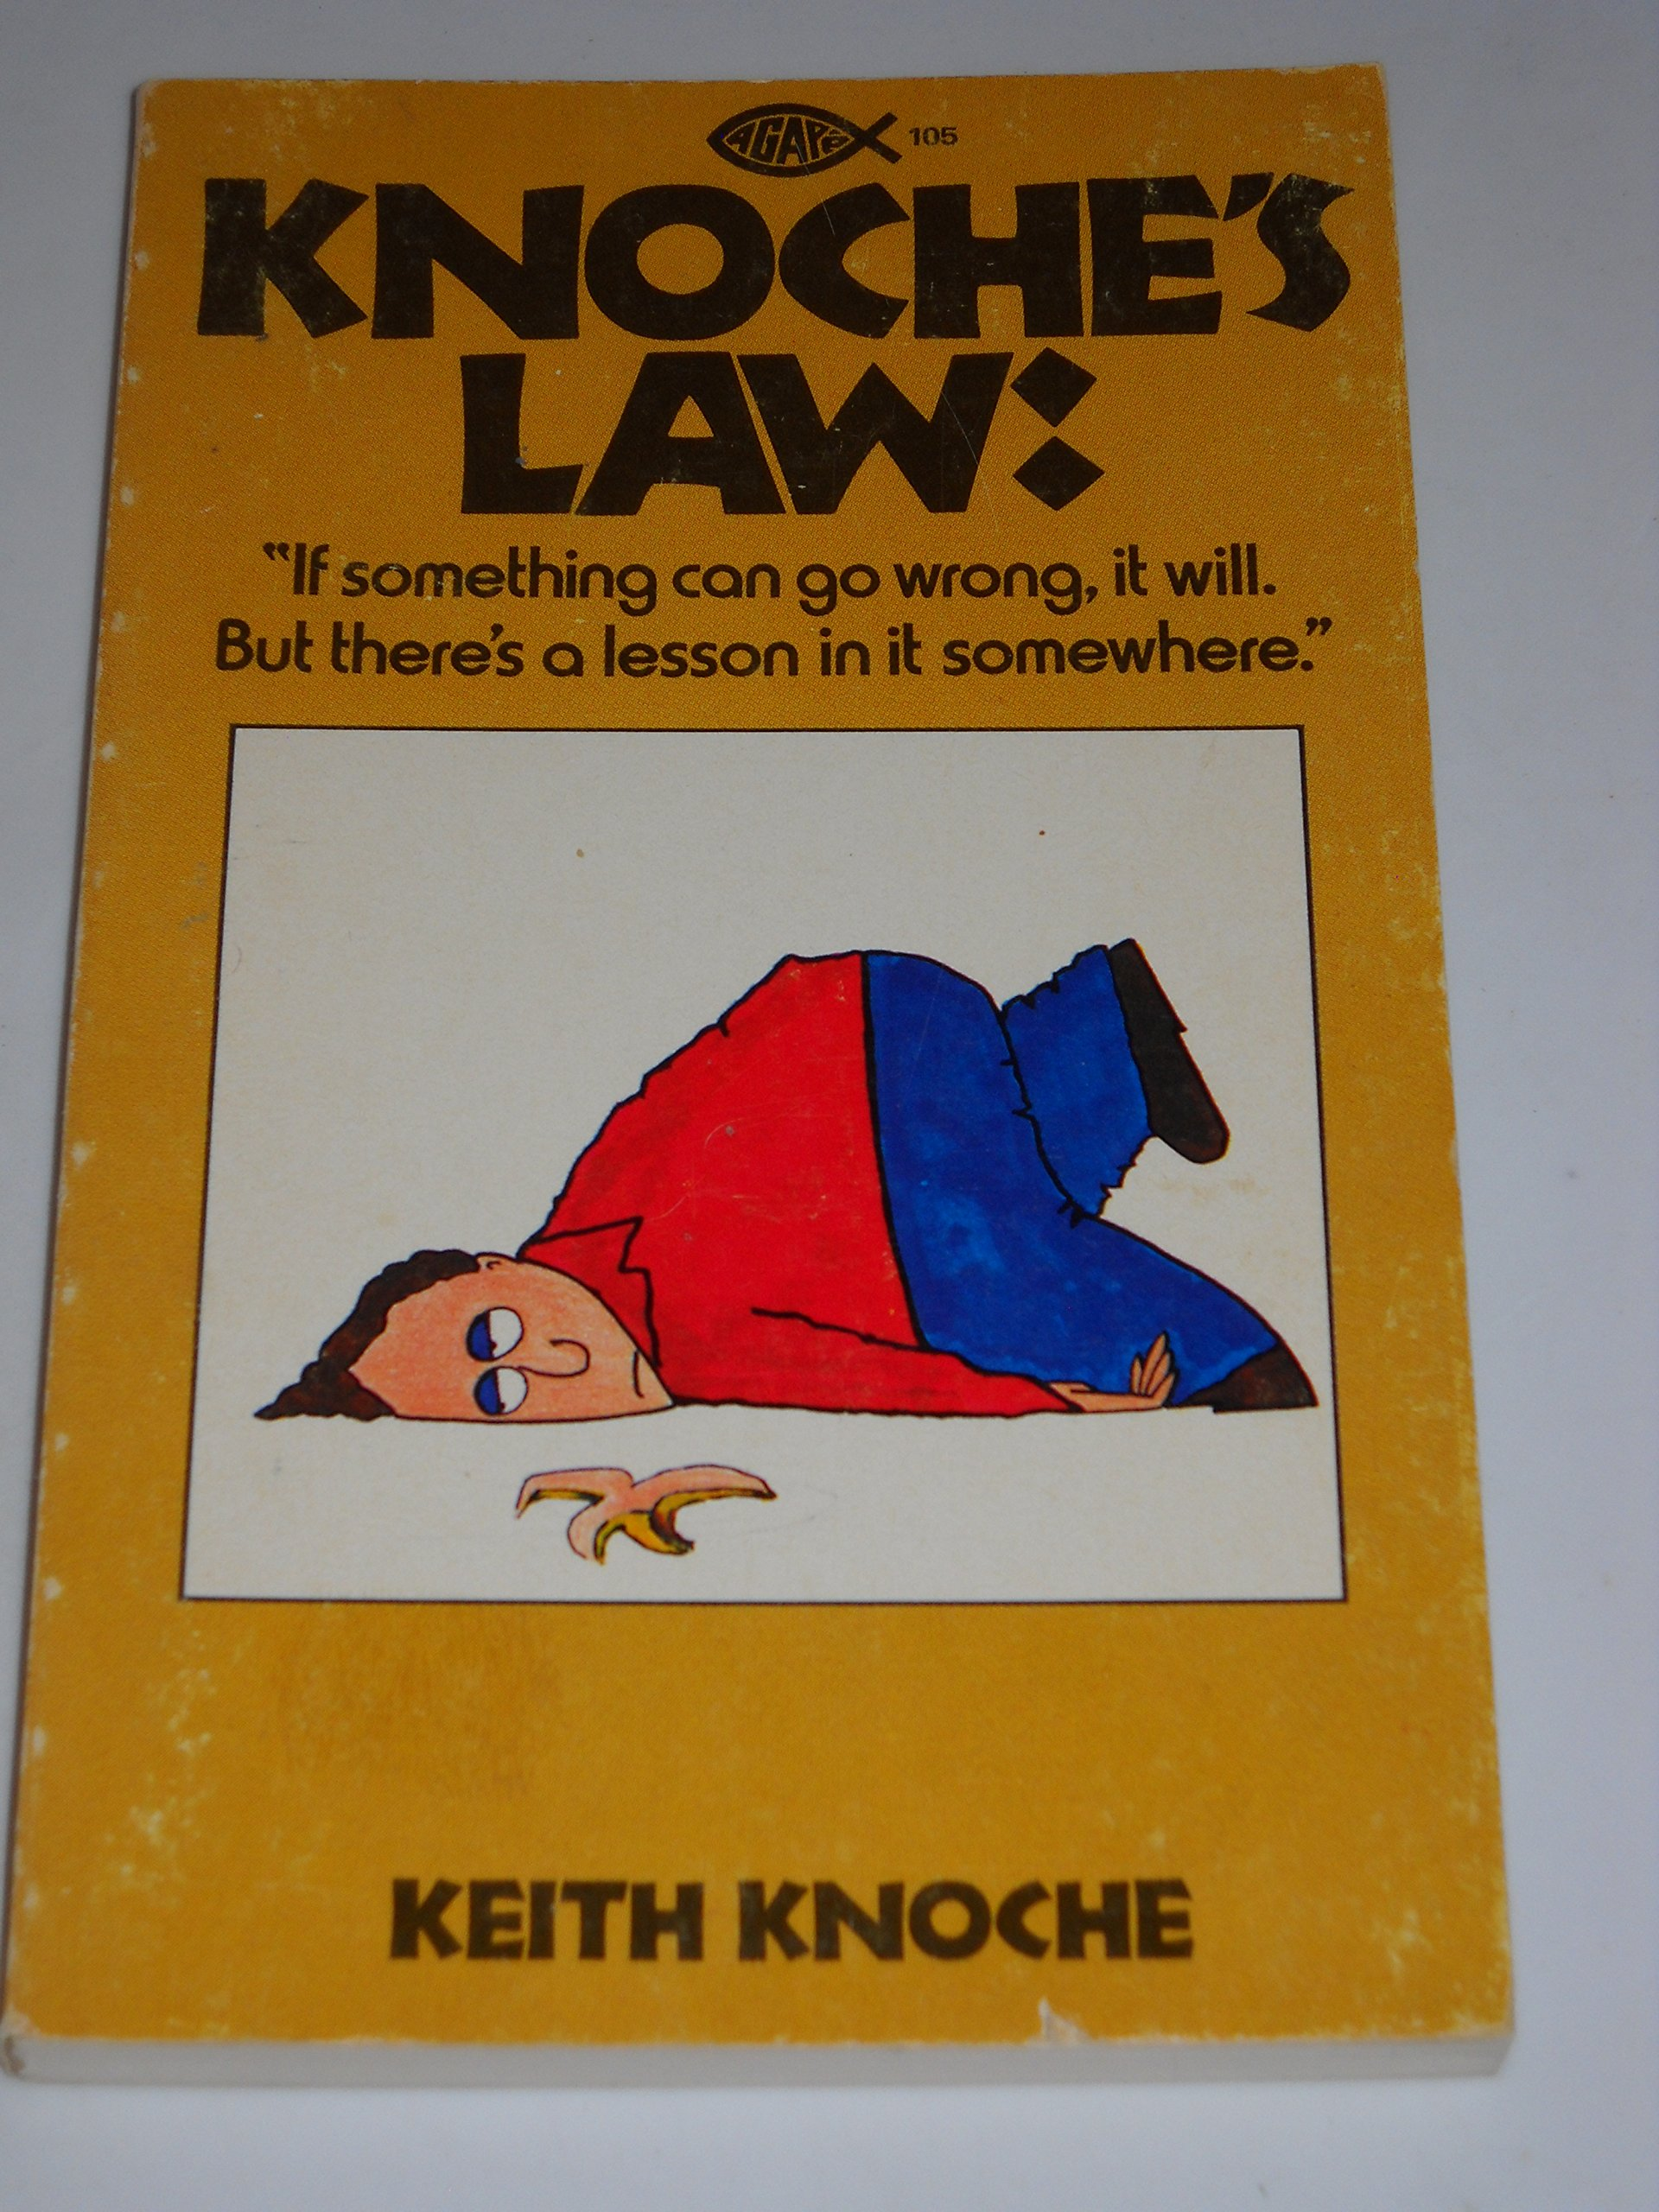 Knoches Law